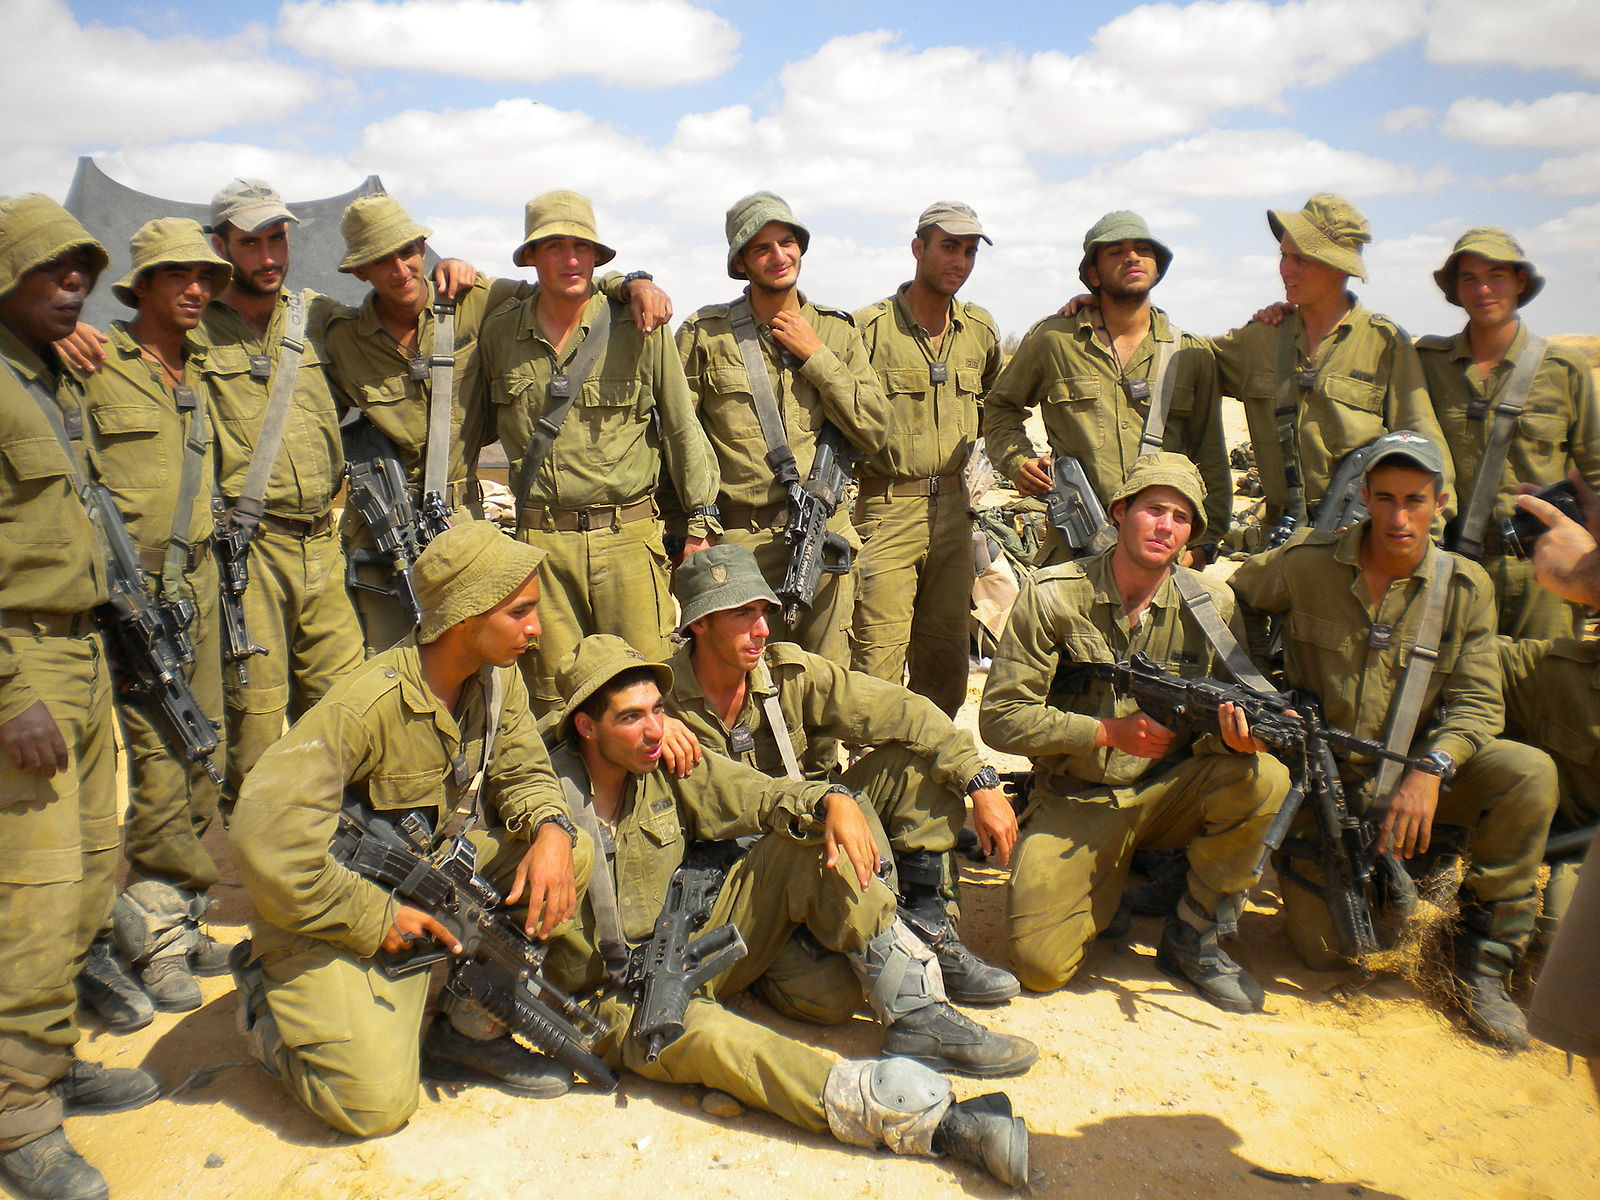 Flickr_-_Israel_Defense_Forces_-_Soldiers_Graduate_Combat_Training,_Pose_for_Group_Picture.jpg